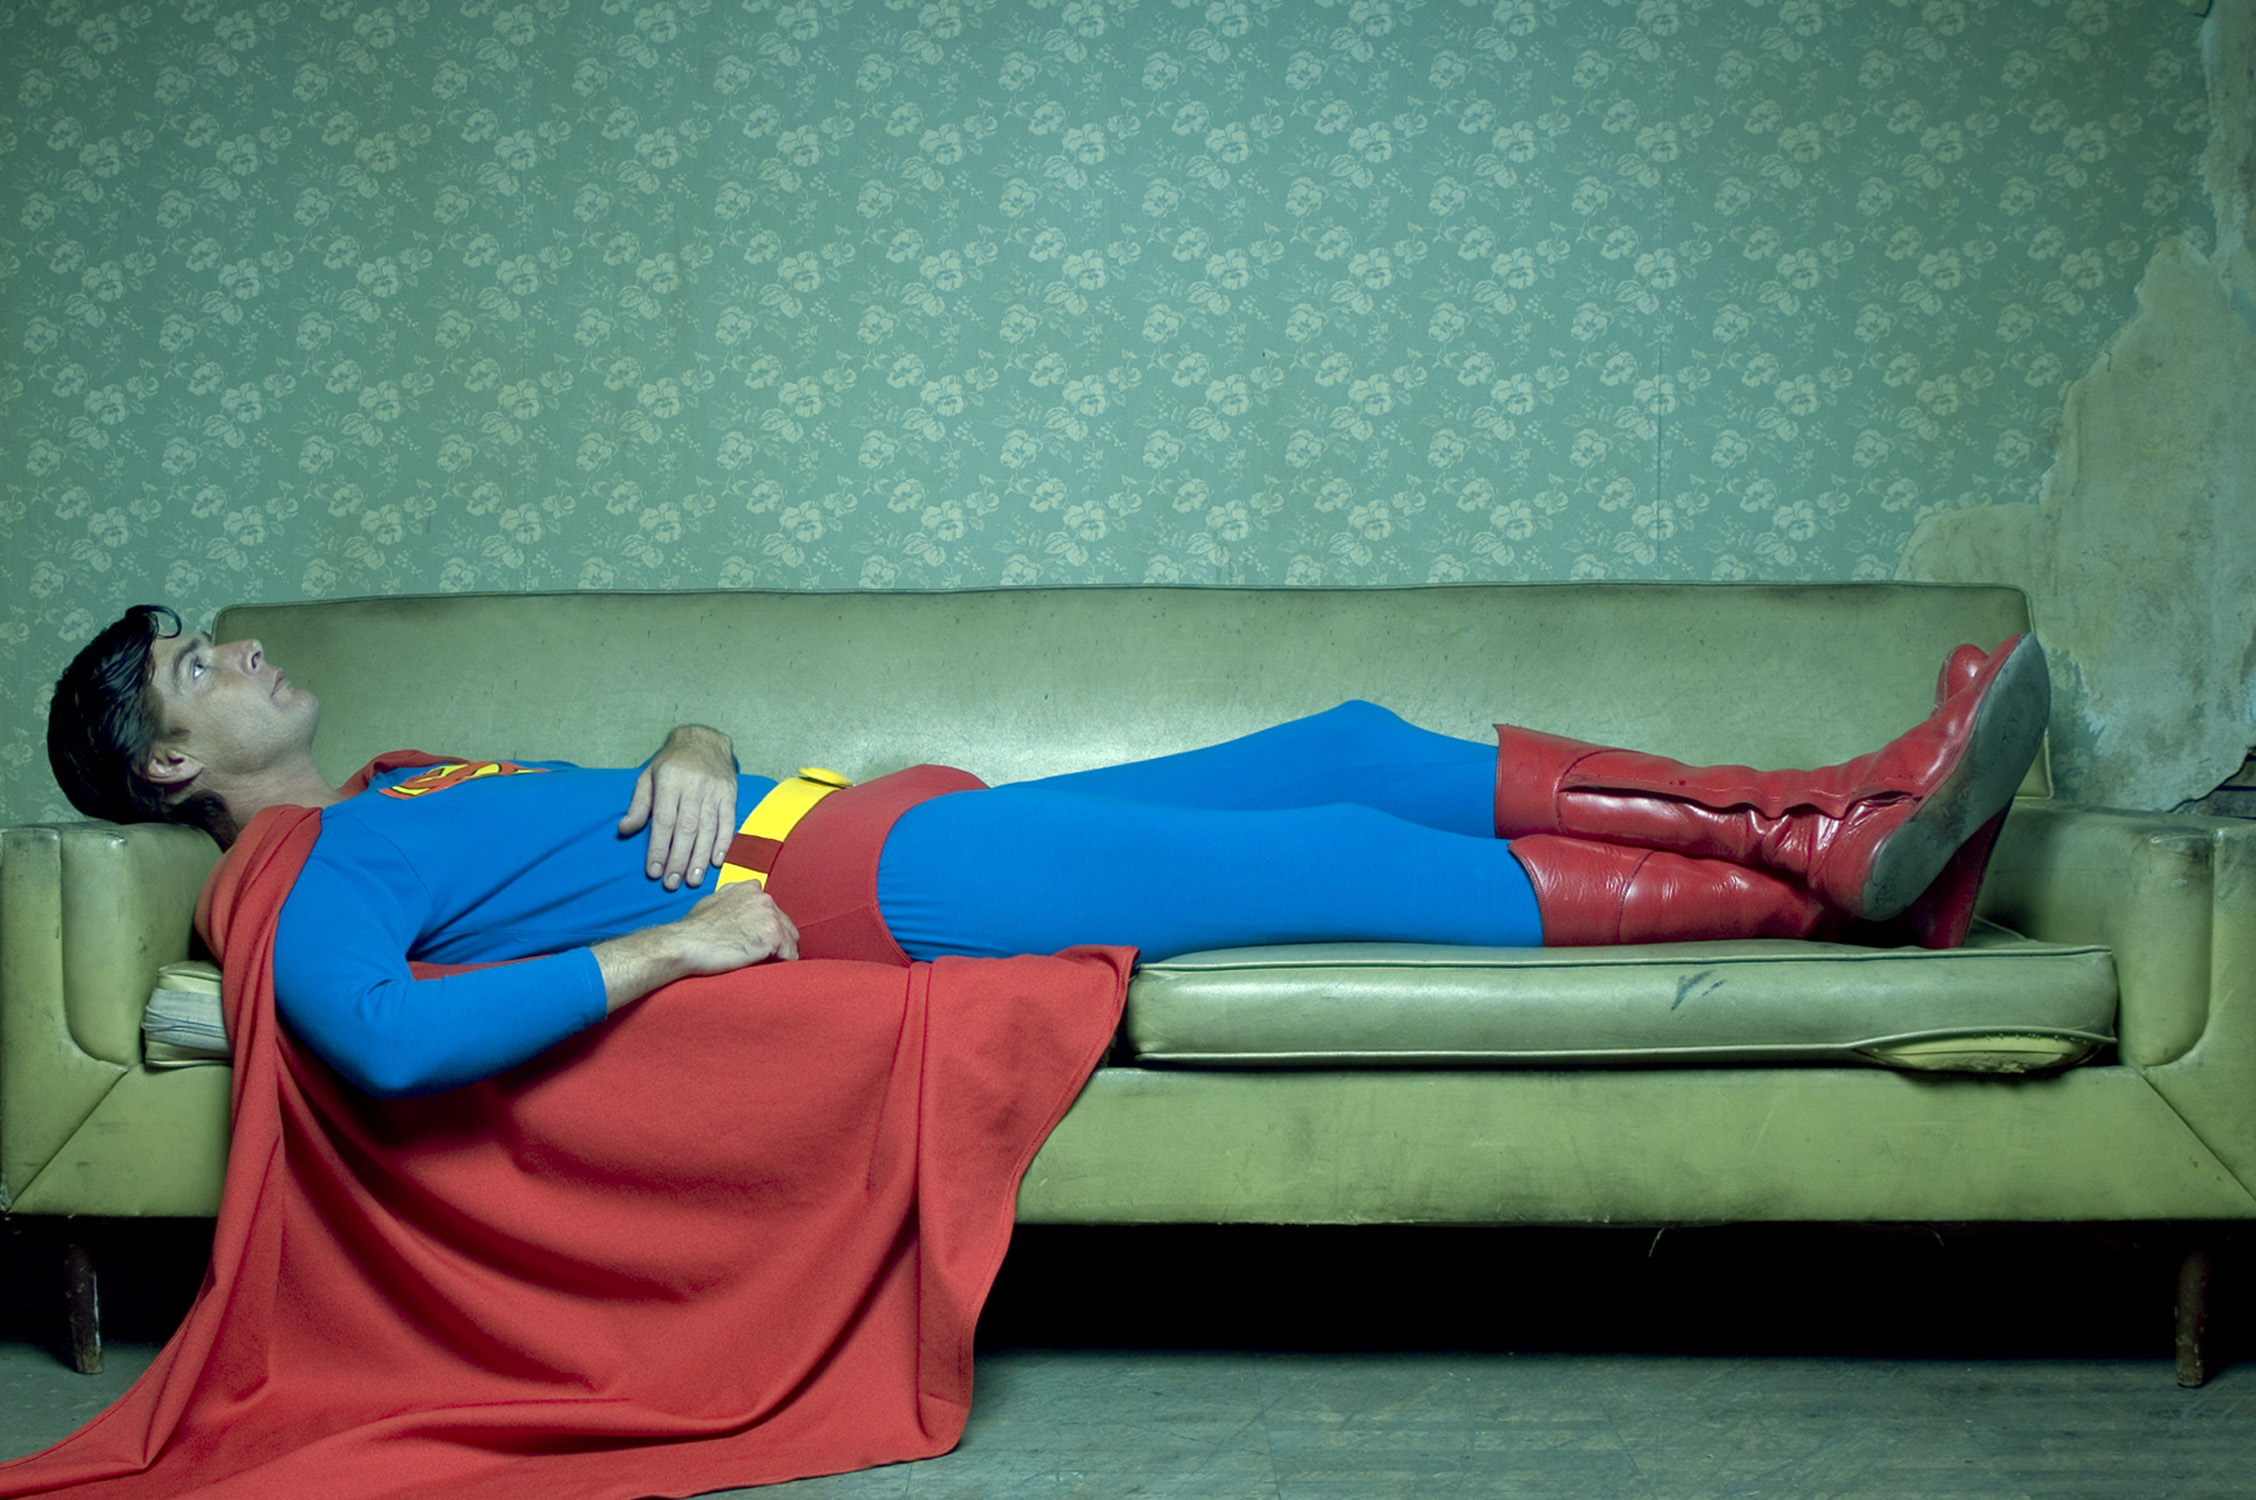 Superman on couch.jpg